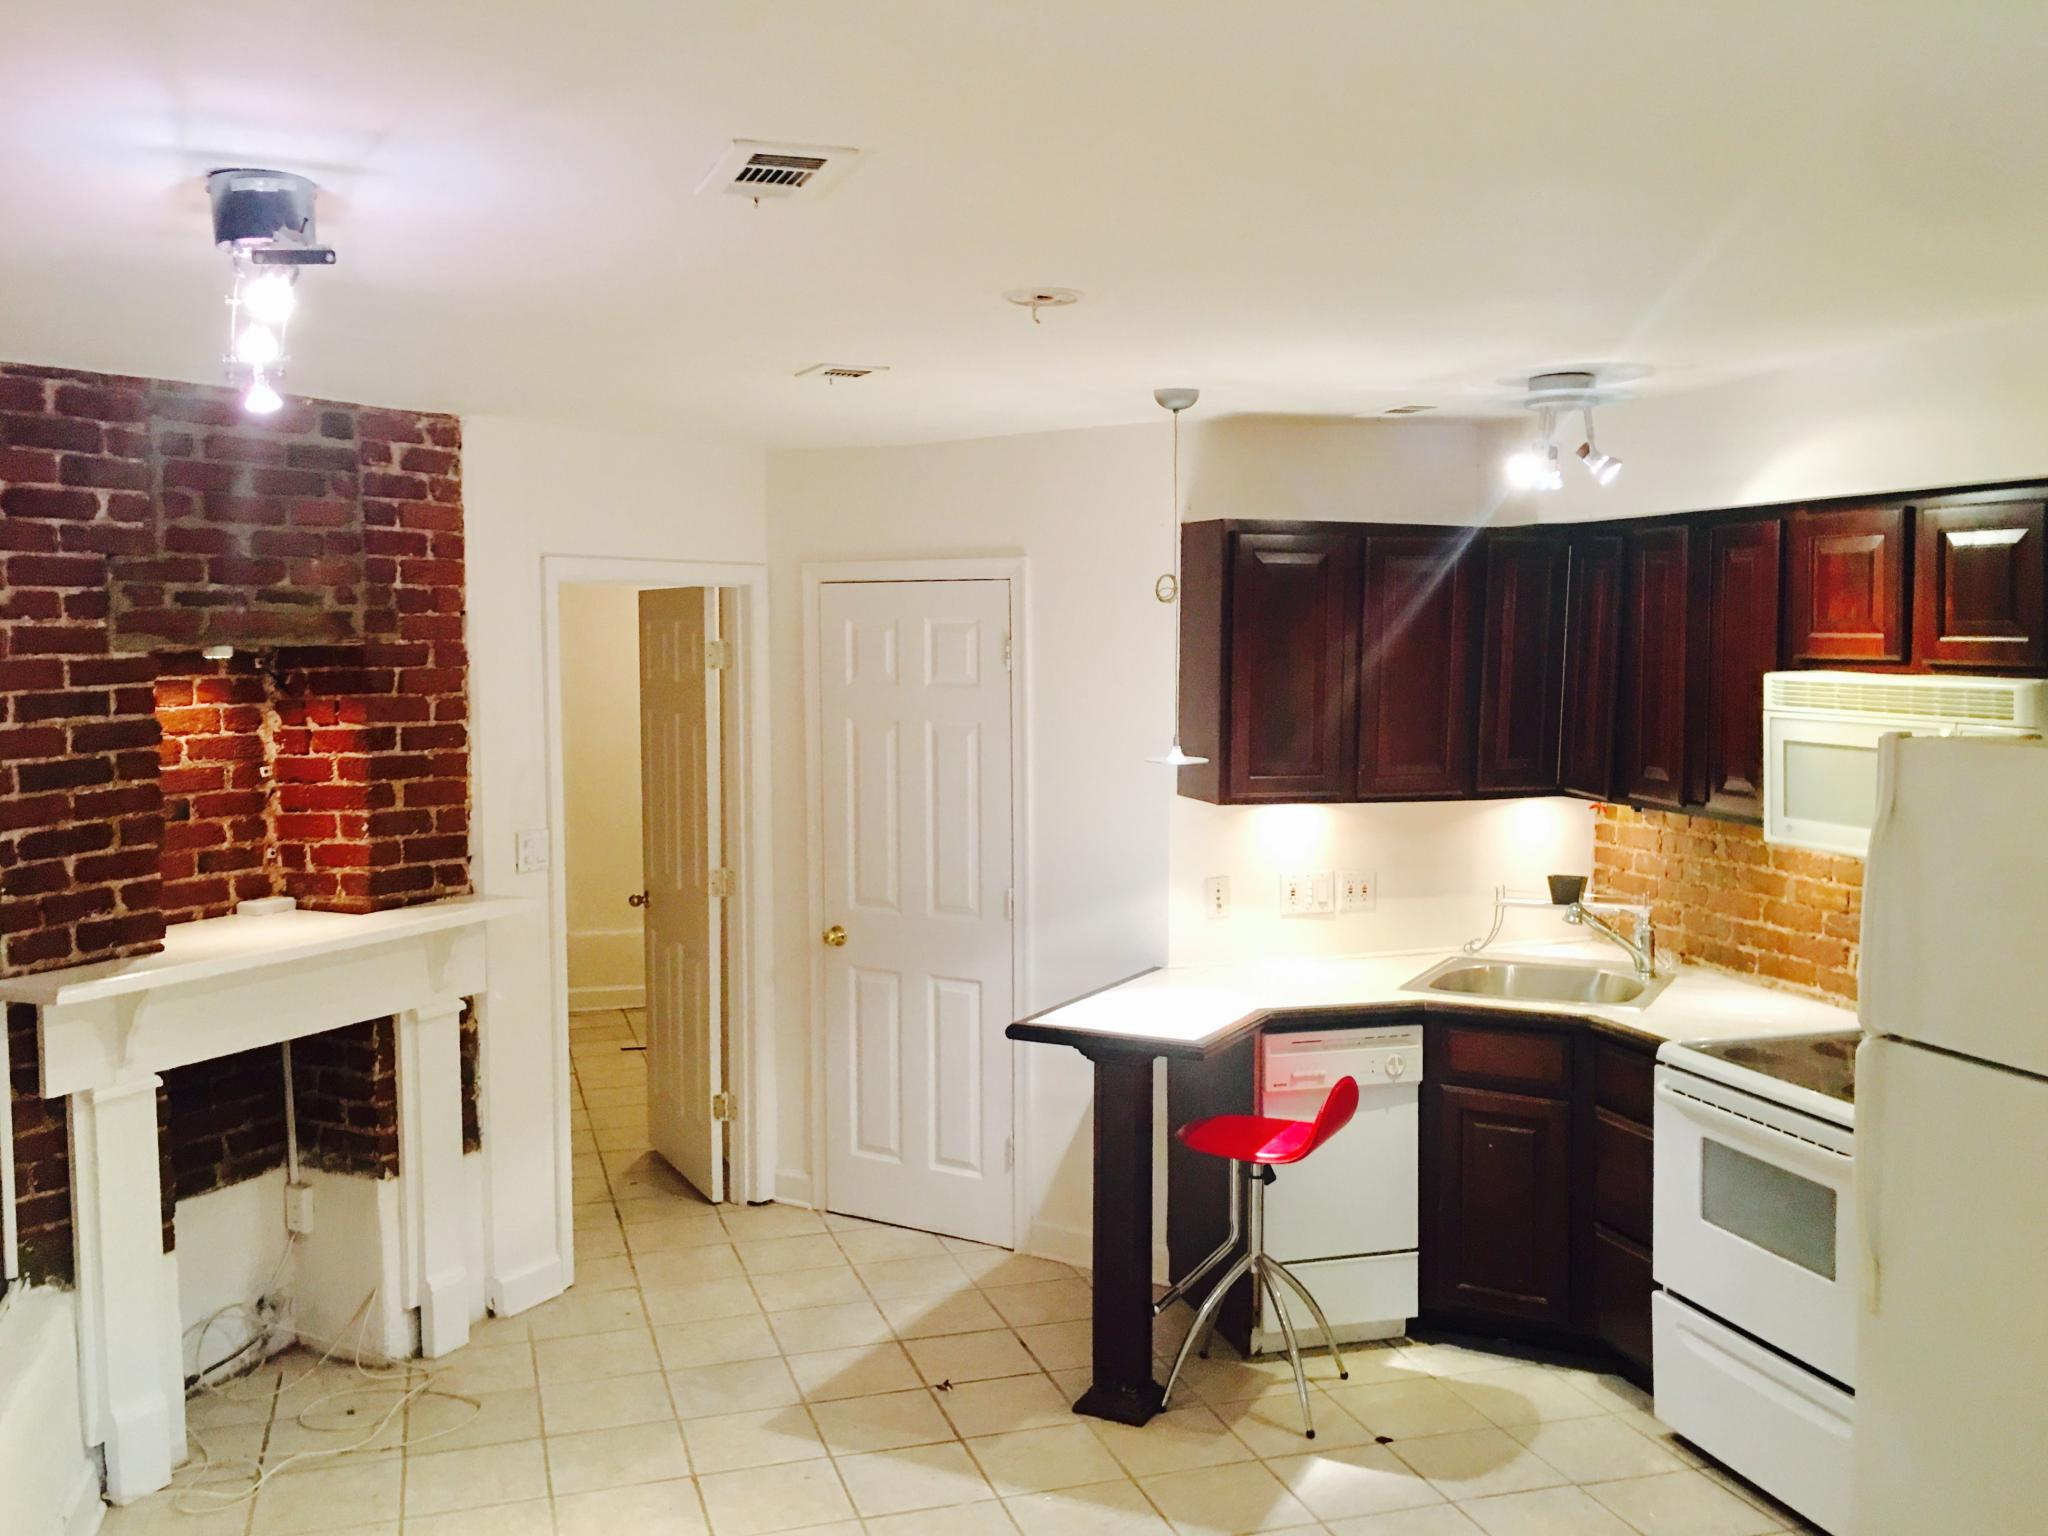 316 3rd St SE For Rent - Washington, DC | Trulia